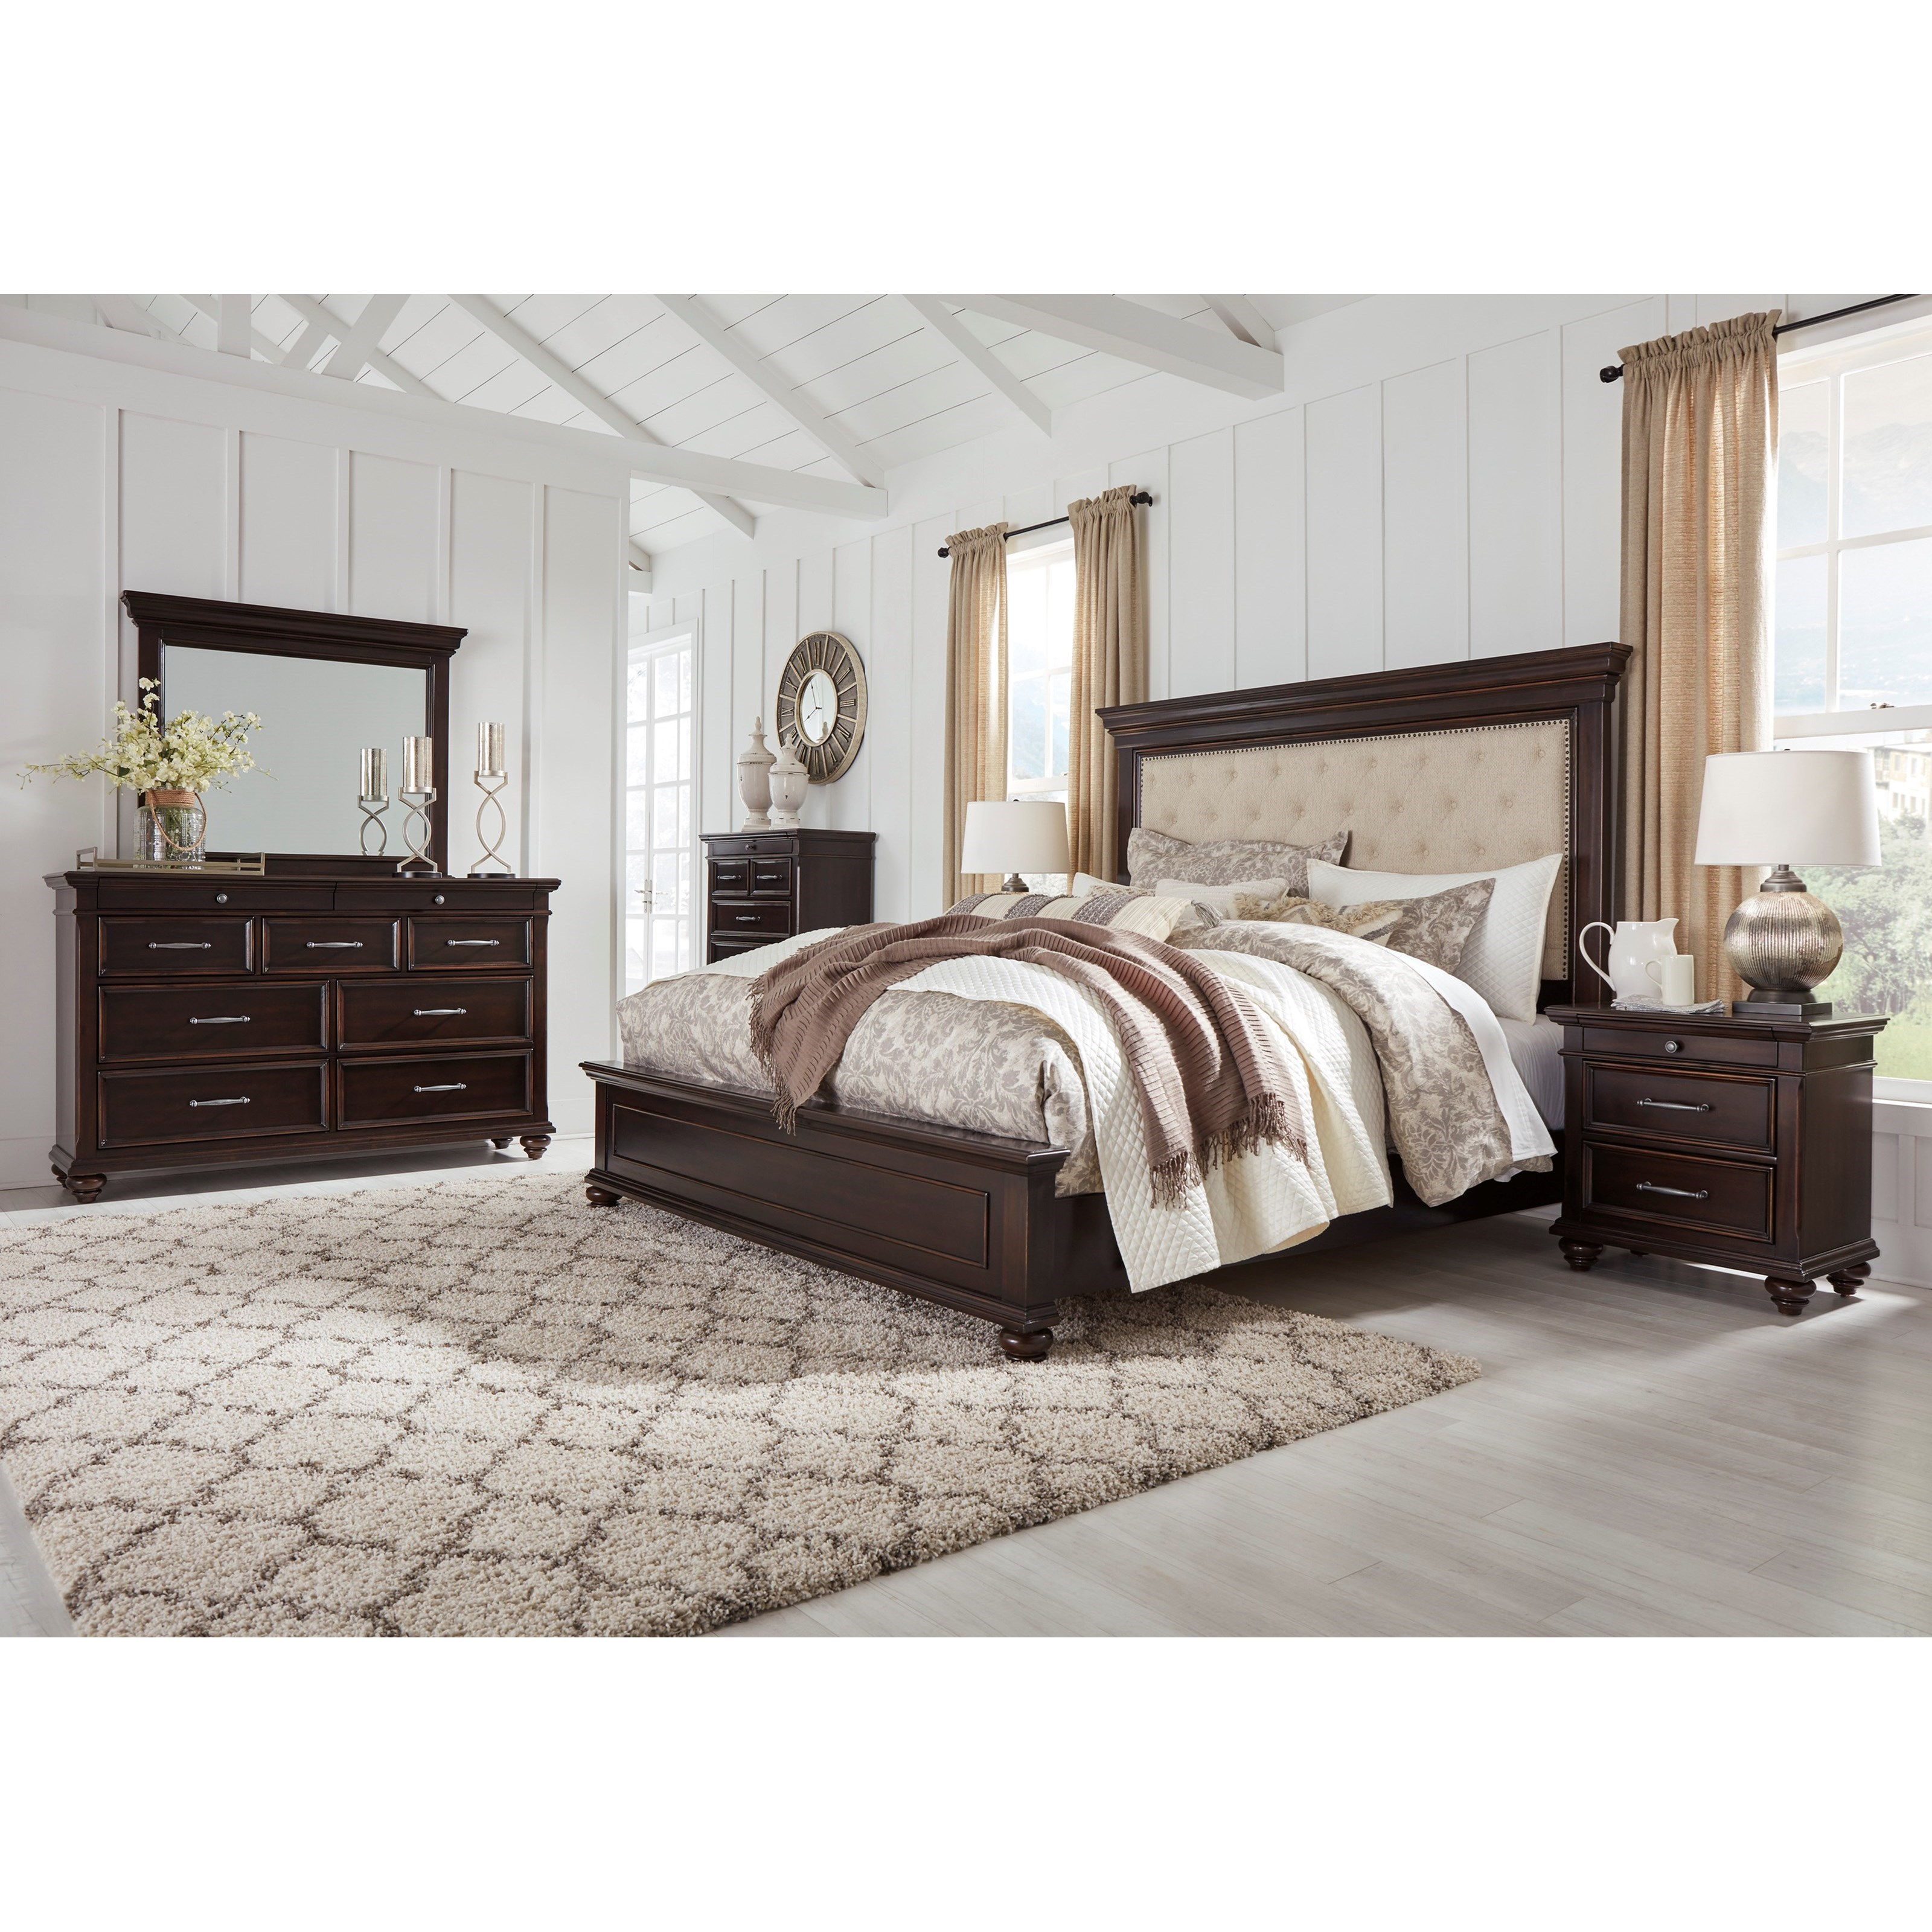 Brynhurst King Bedroom Group by Signature Design by Ashley at Northeast Factory Direct